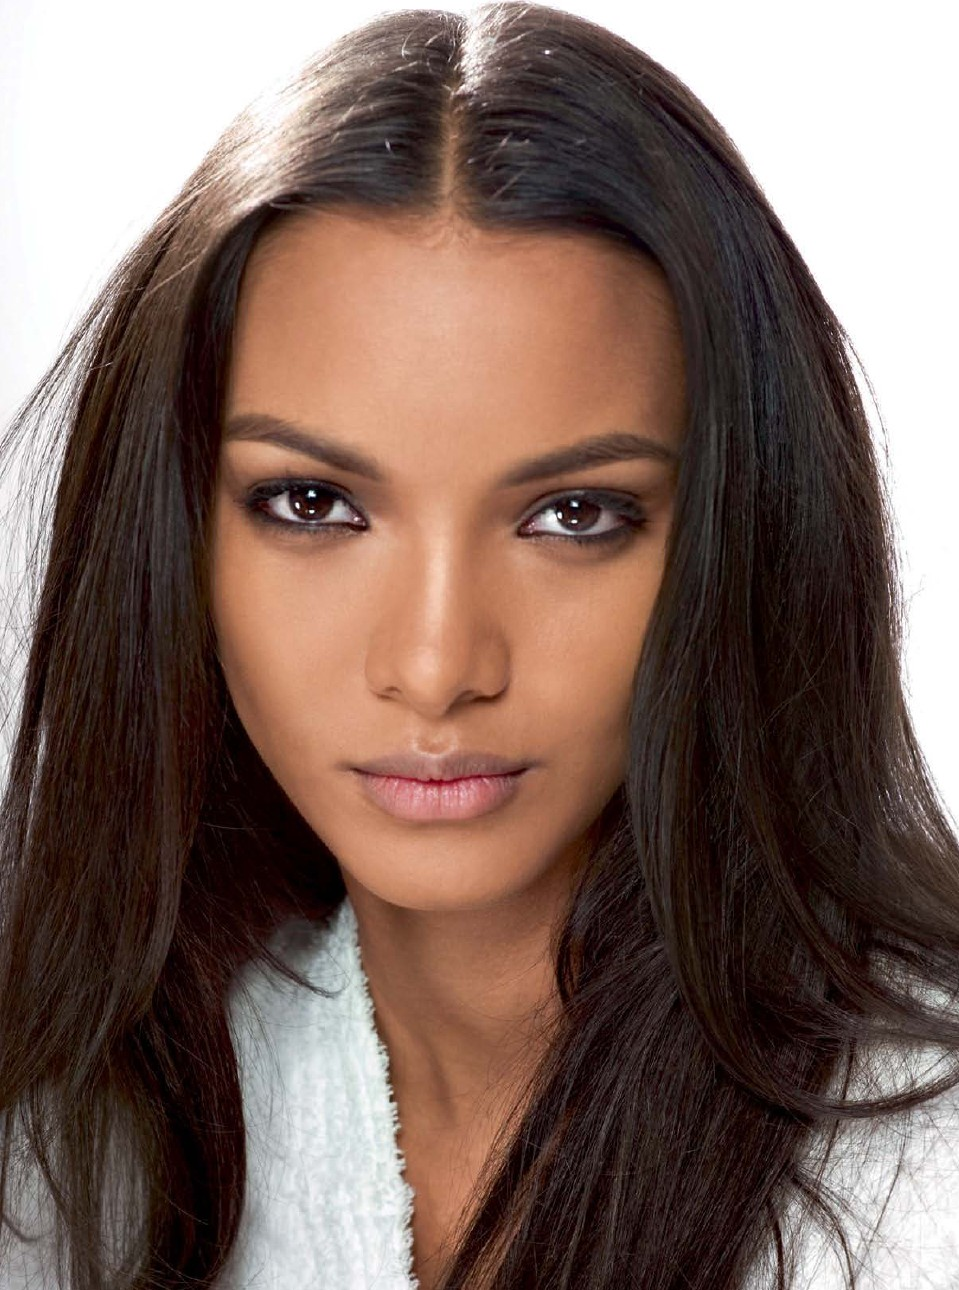 The 26-year old daughter of father (?) and mother(?), 180 cm tall Lais Ribeiro in 2017 photo